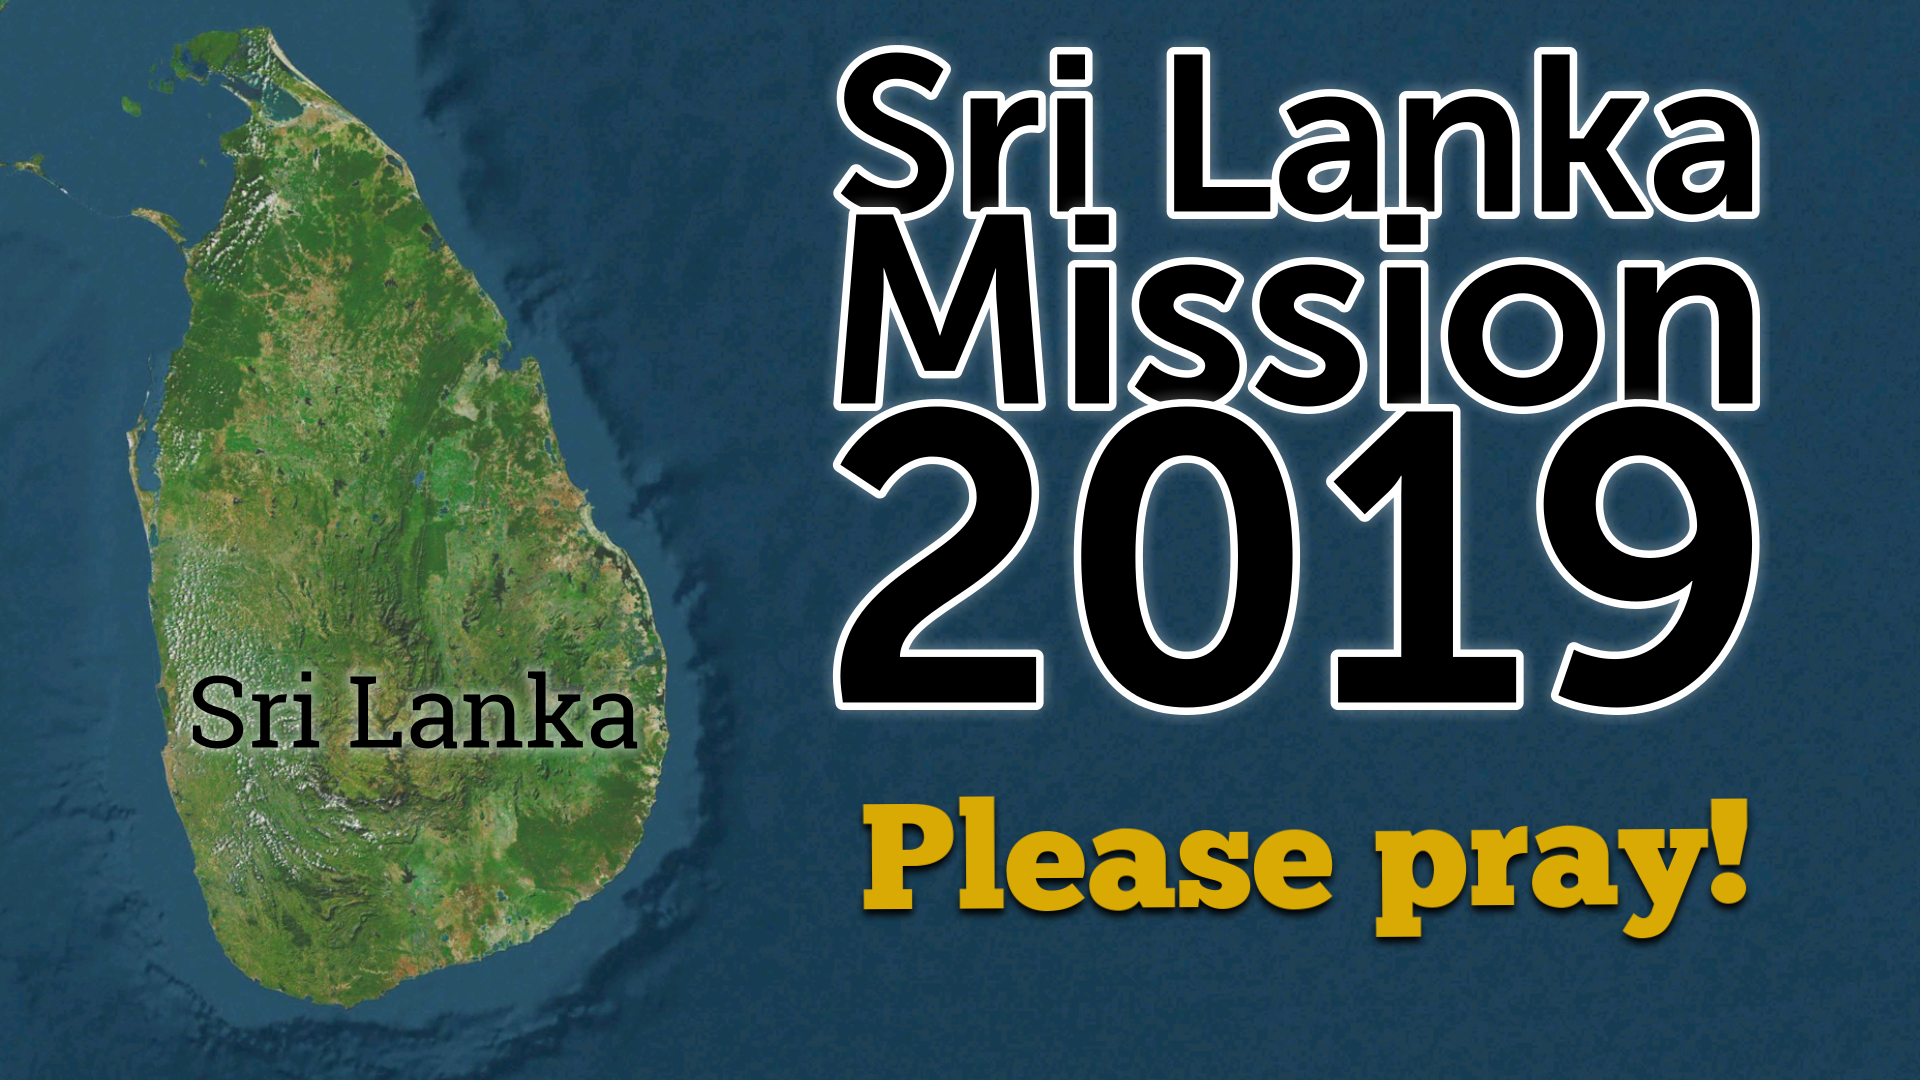 Update #11: Sri Lanka Mission 2019